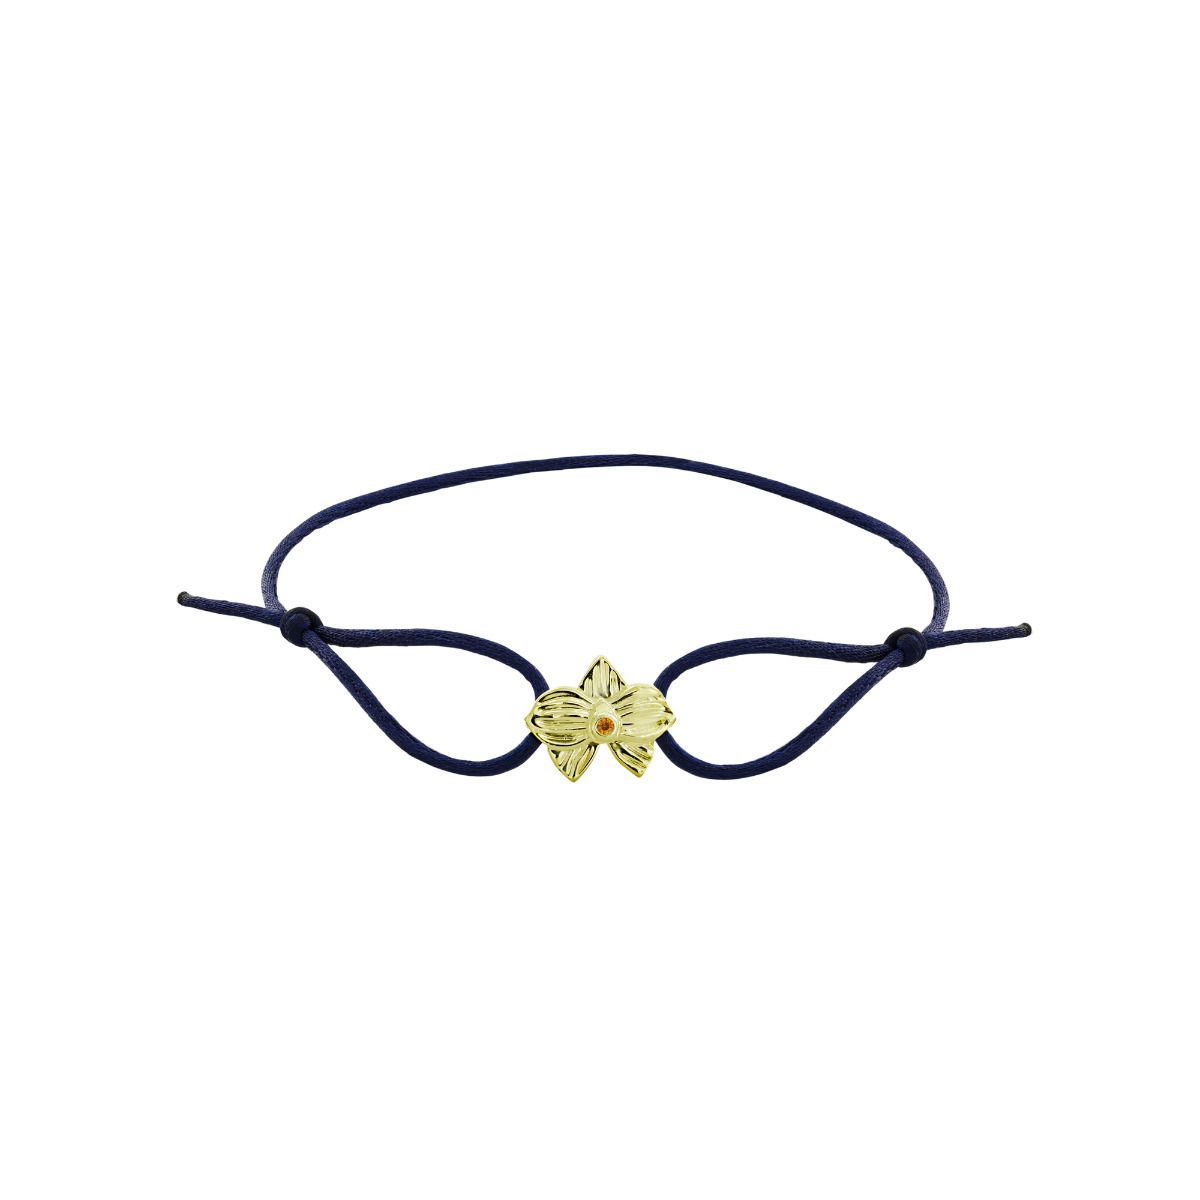 Hello Dolly Foundation Allyn's Orchid 14k Yellow Gold Blue Silk Cord Bracelet